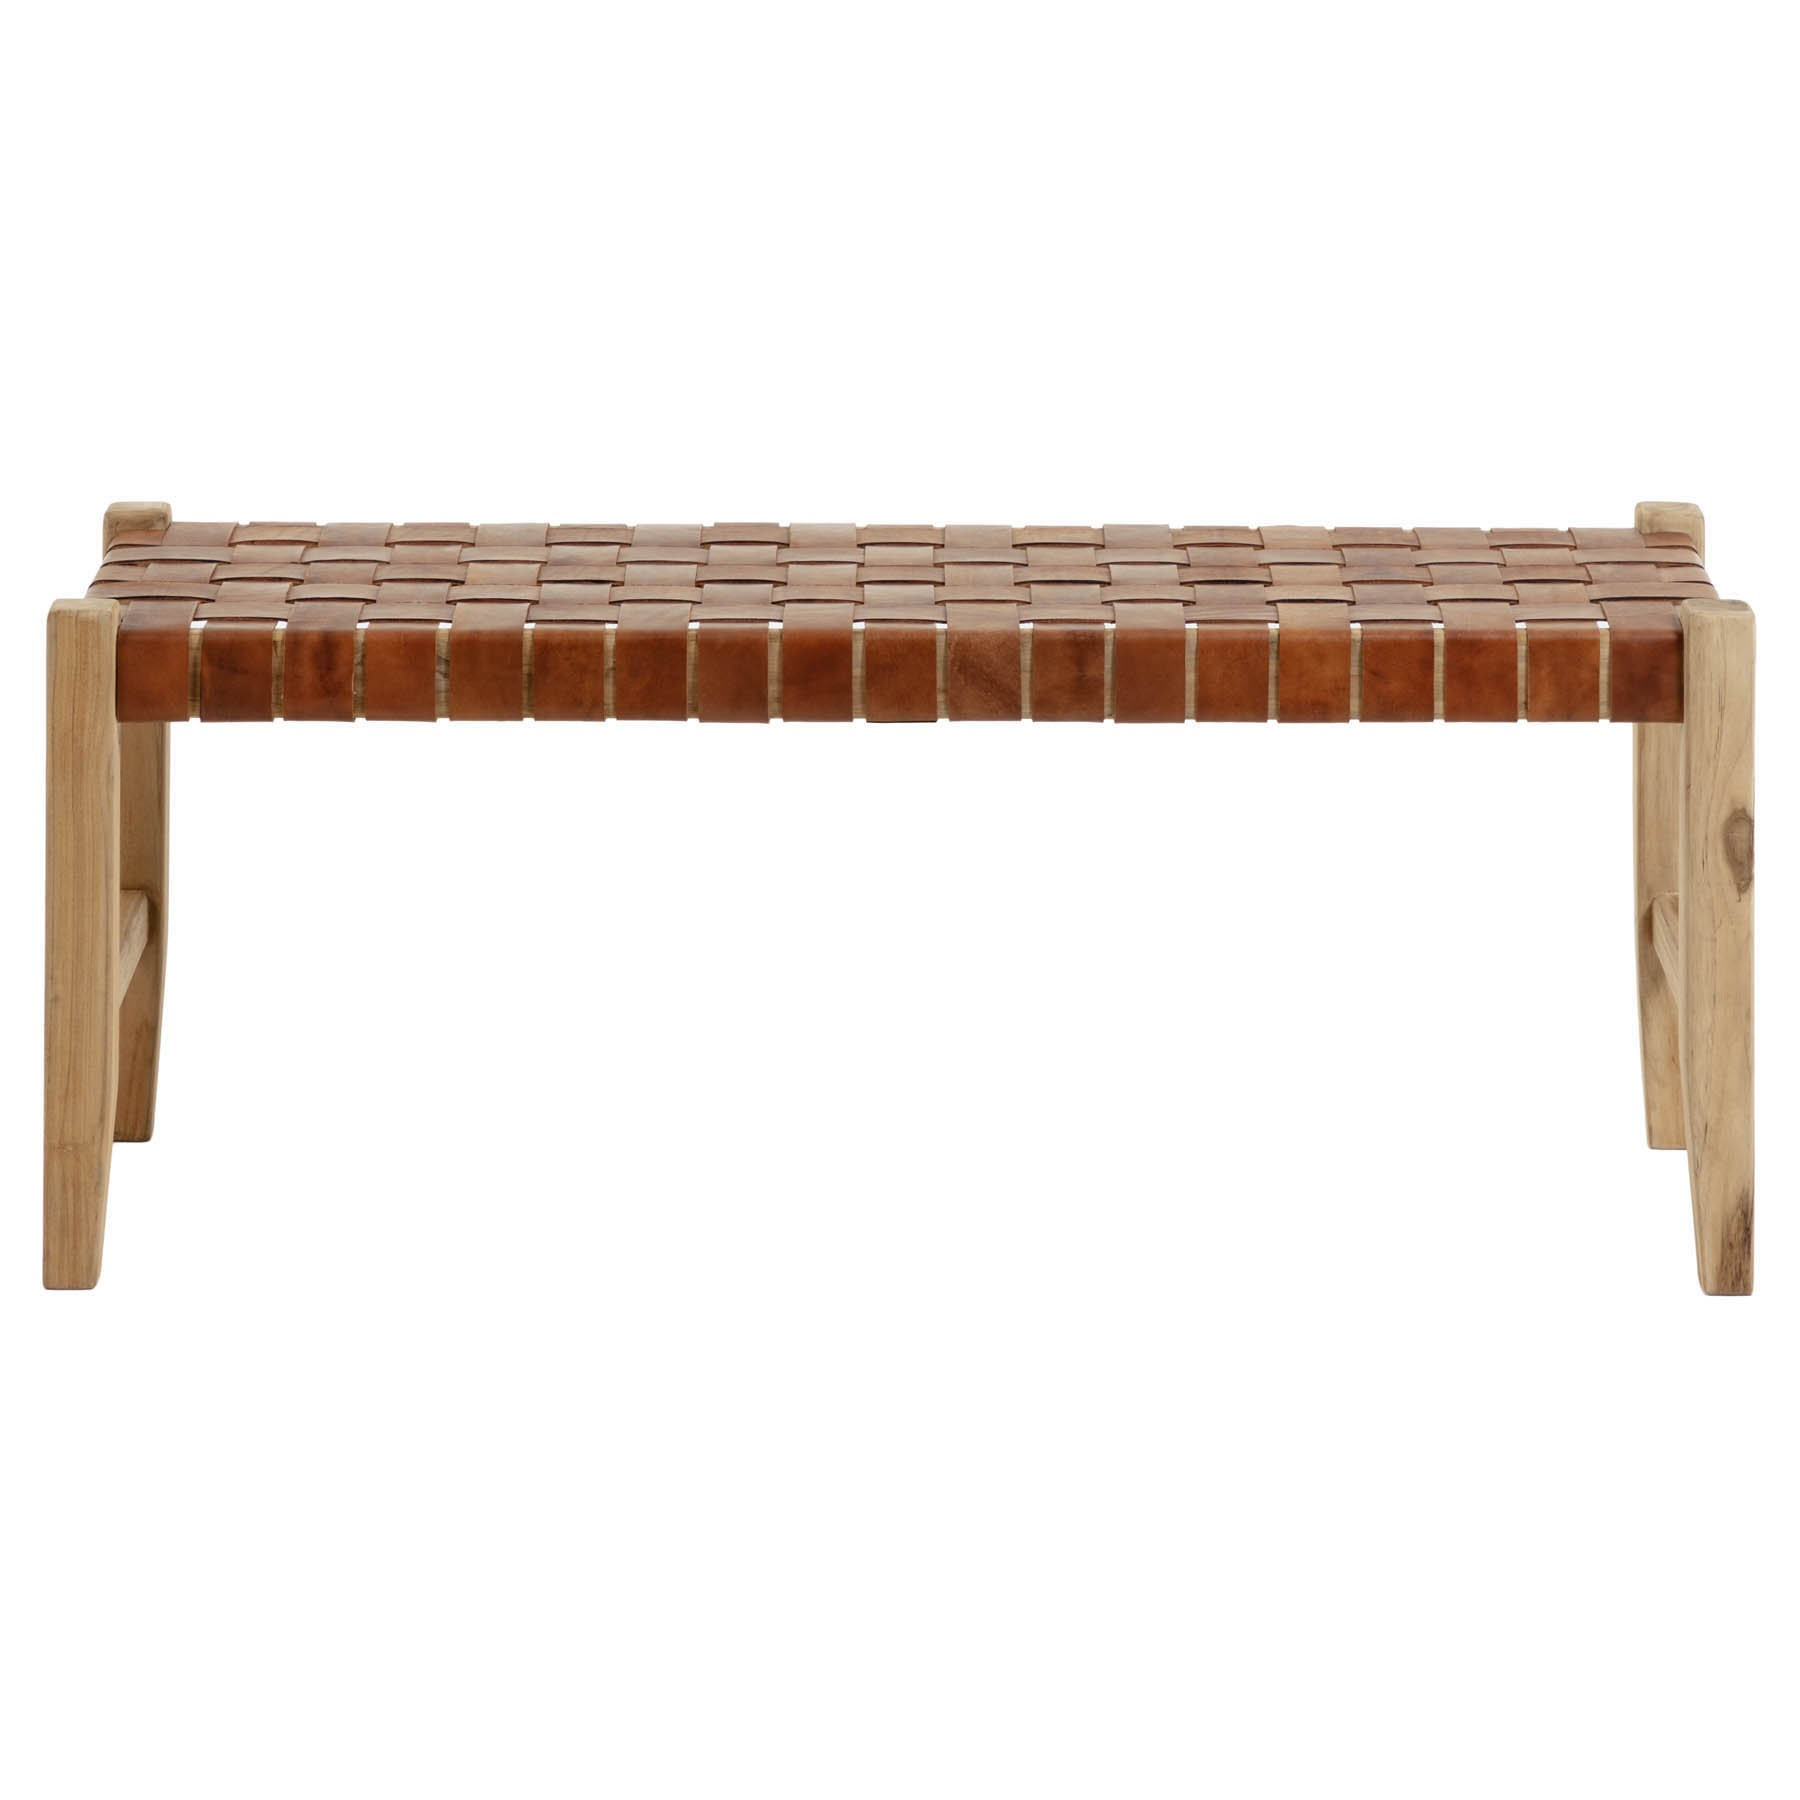 Apia Leather & Teak Timber Bench, 120cm